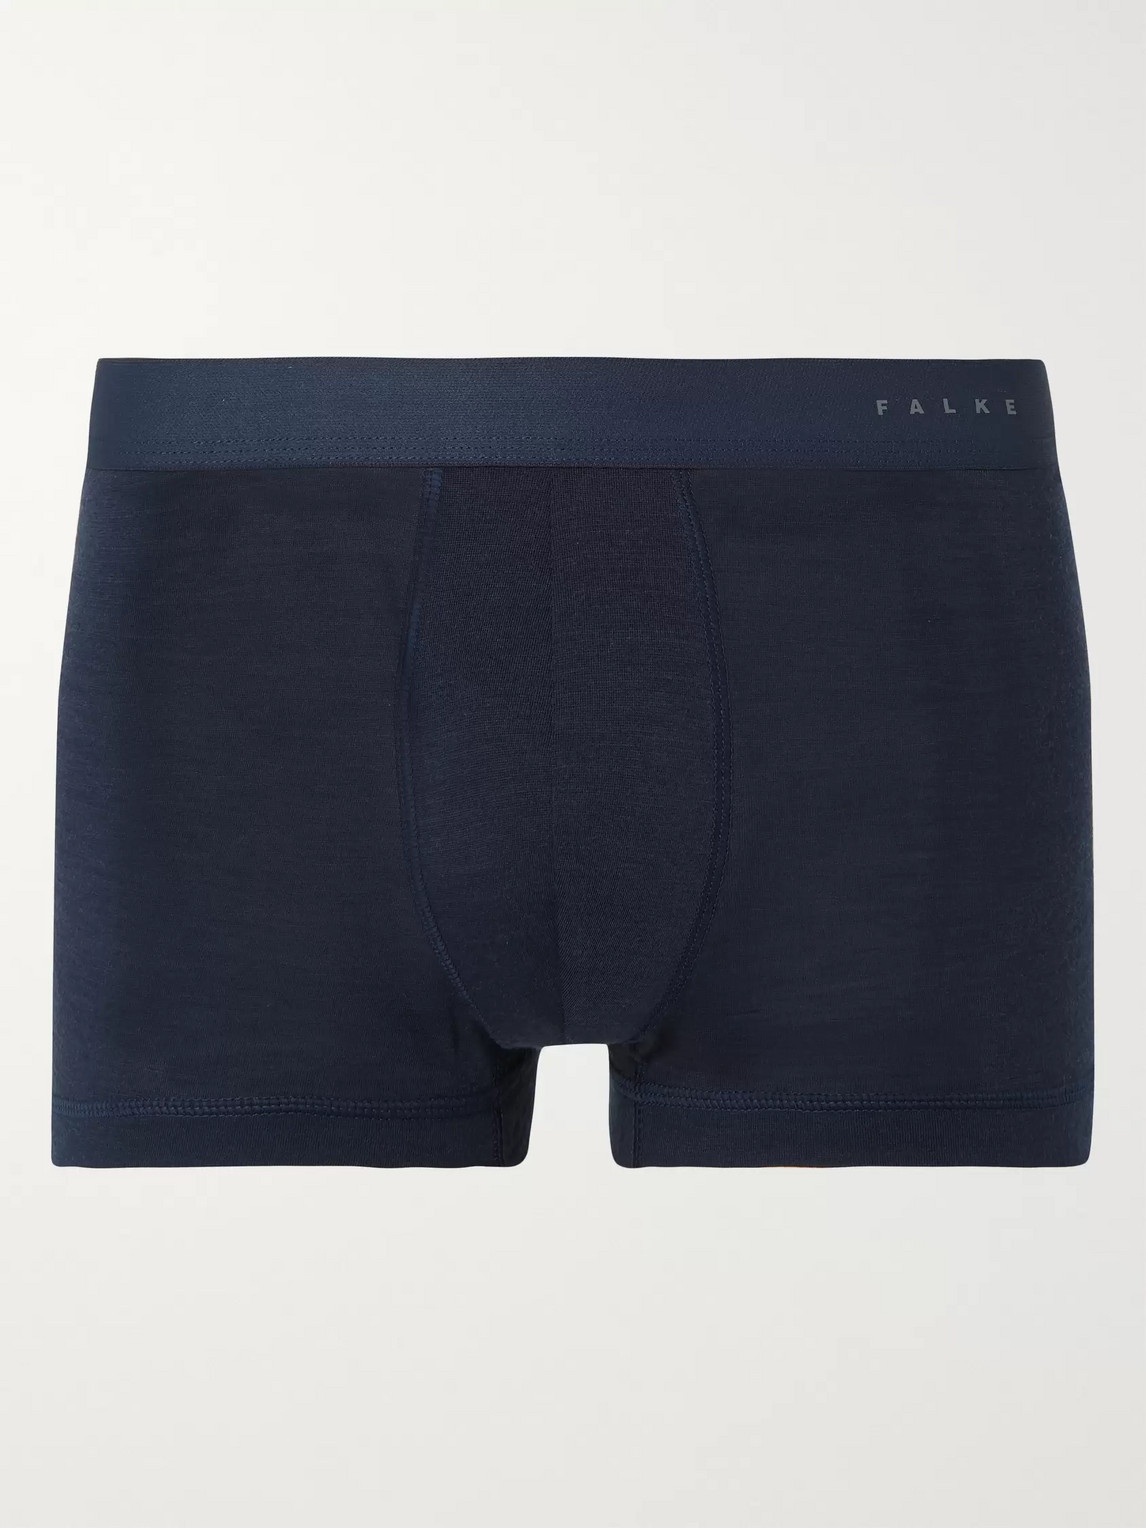 FALKE Ergonomic Sport System - Wool and Silk-Blend Boxer Briefs - Men - Blue